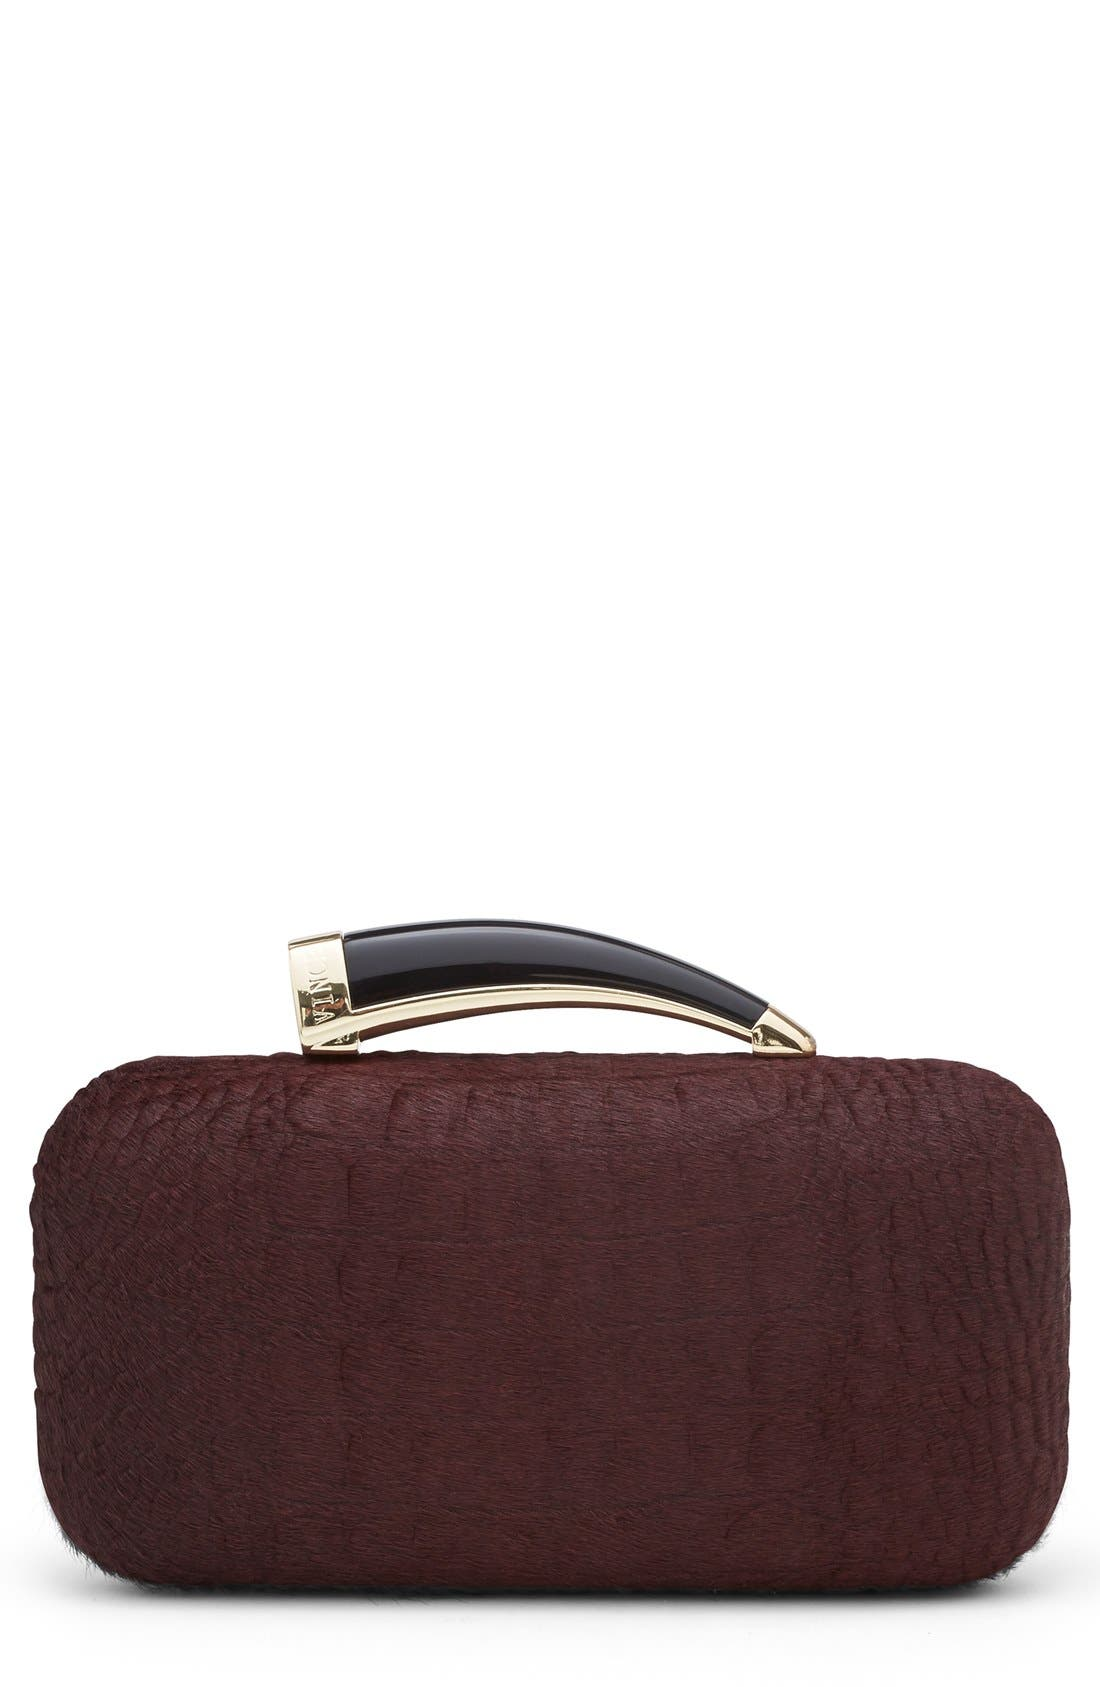 Alternate Image 1 Selected - Vince Camuto 'Horn' Clutch